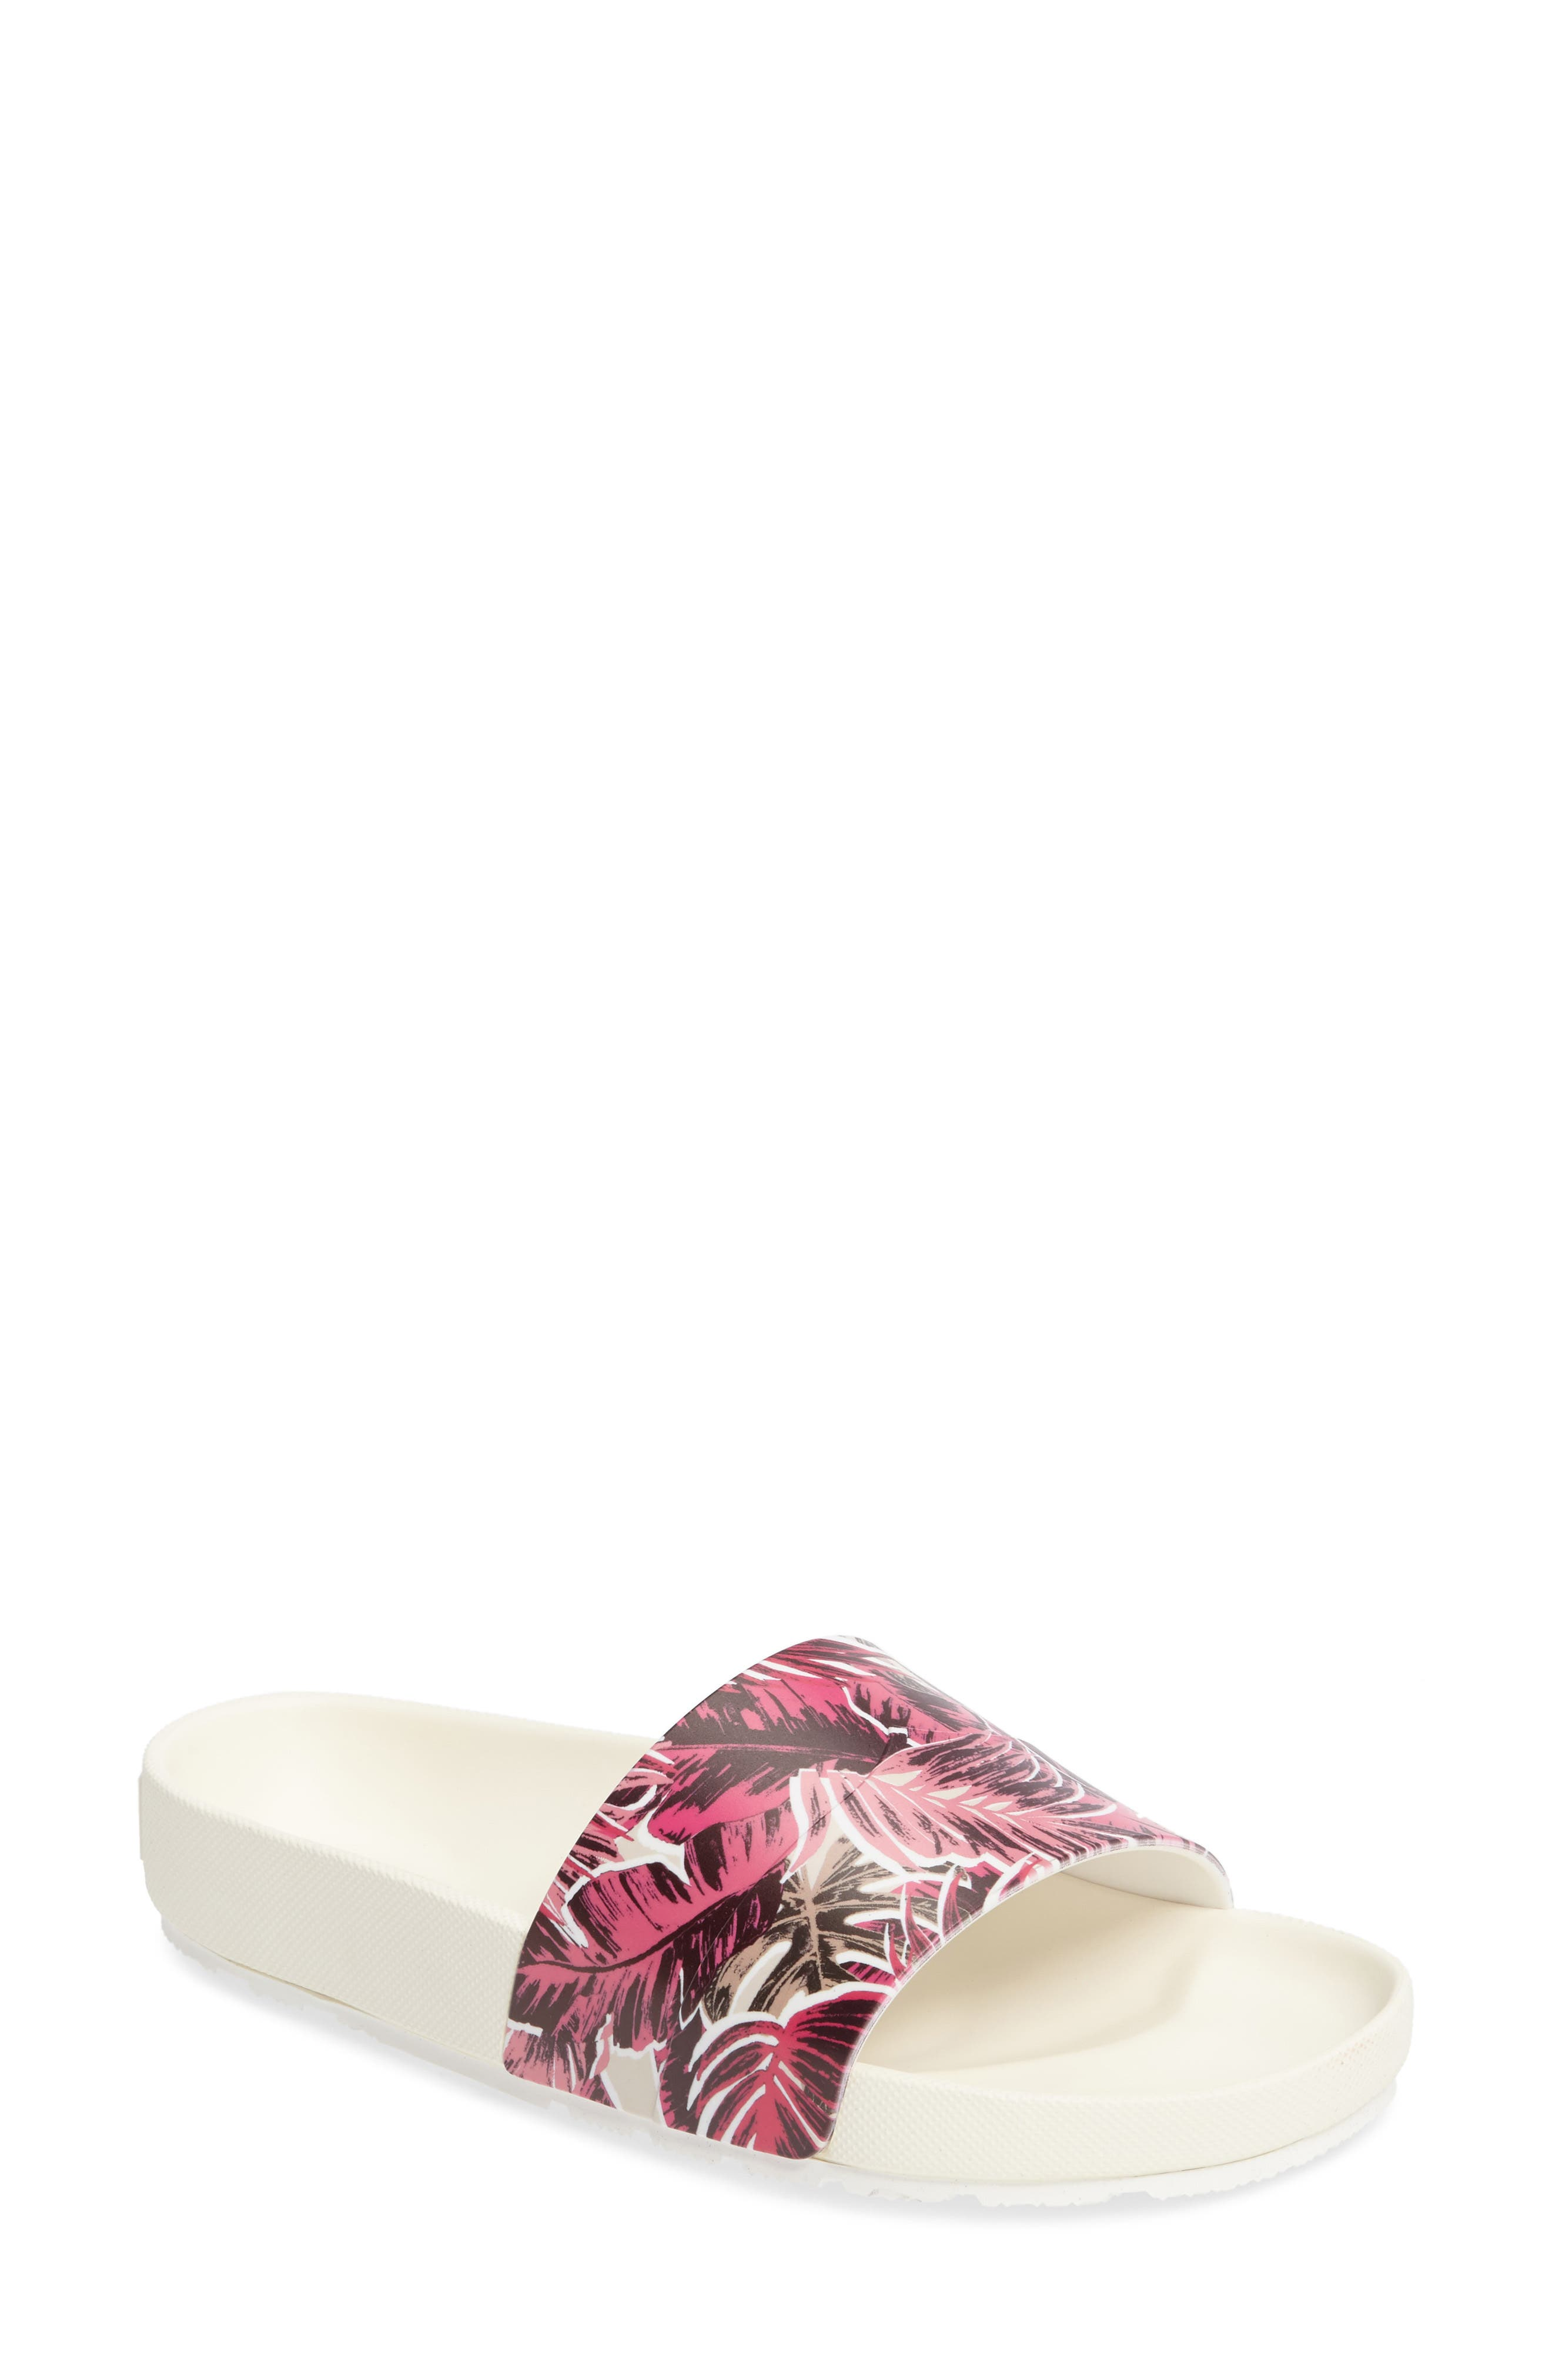 Hunter Original - Jungle Print Slide Sandal (Women)